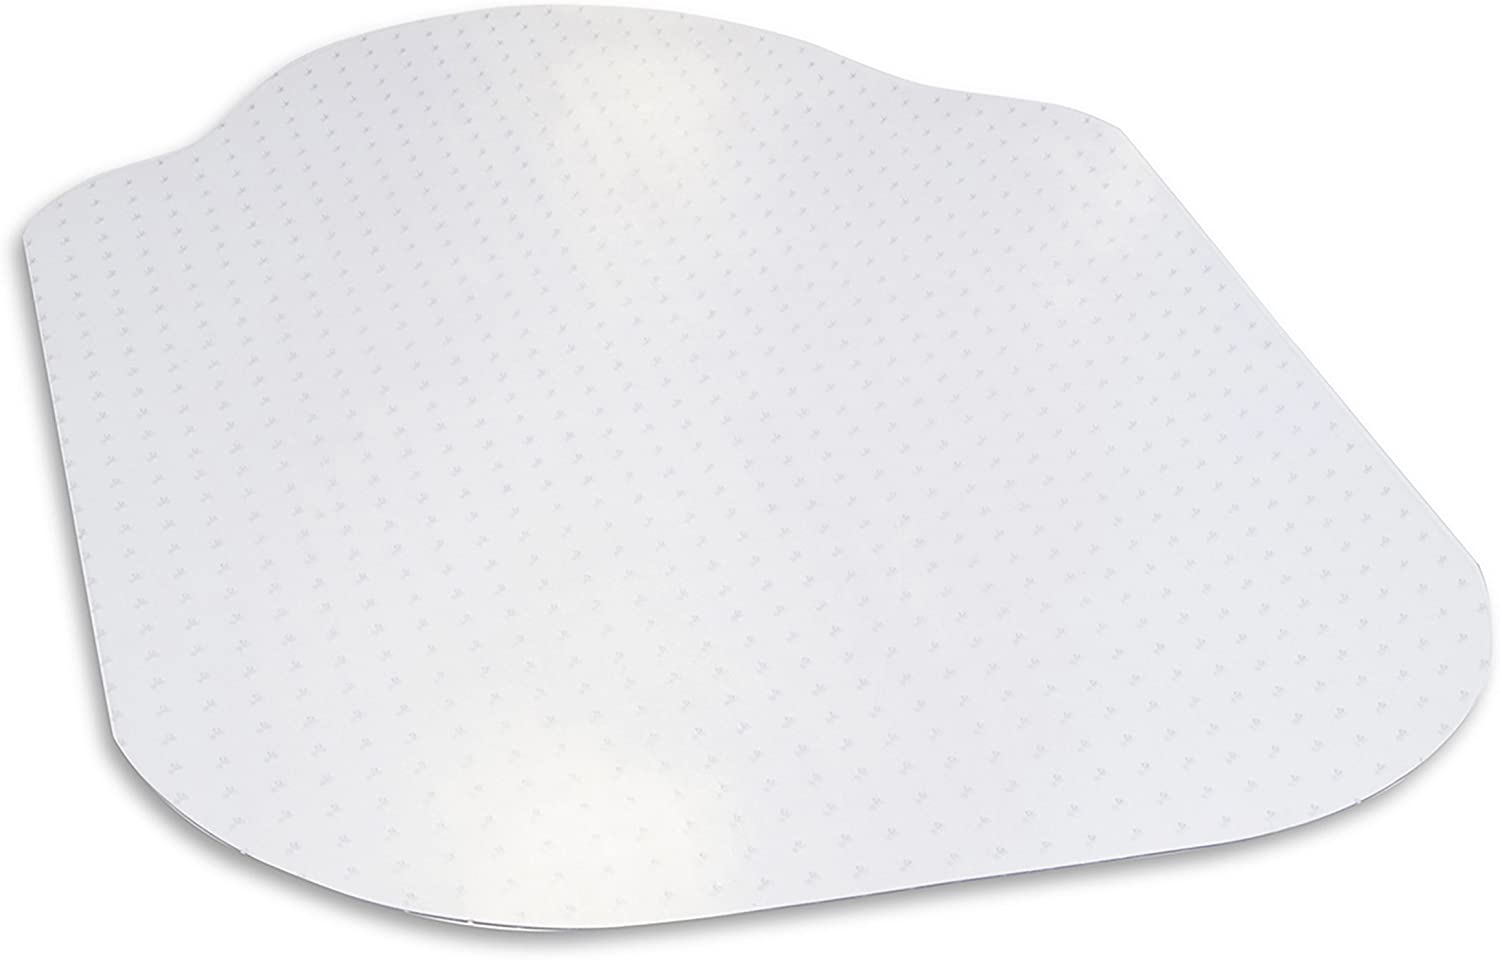 "Evolve Modern Shape 36"" x 48"" Clear Office Chair Mat with Lip for Low and Medium Pile Carpet, Made in The USA by Dimex, (C515003J)"